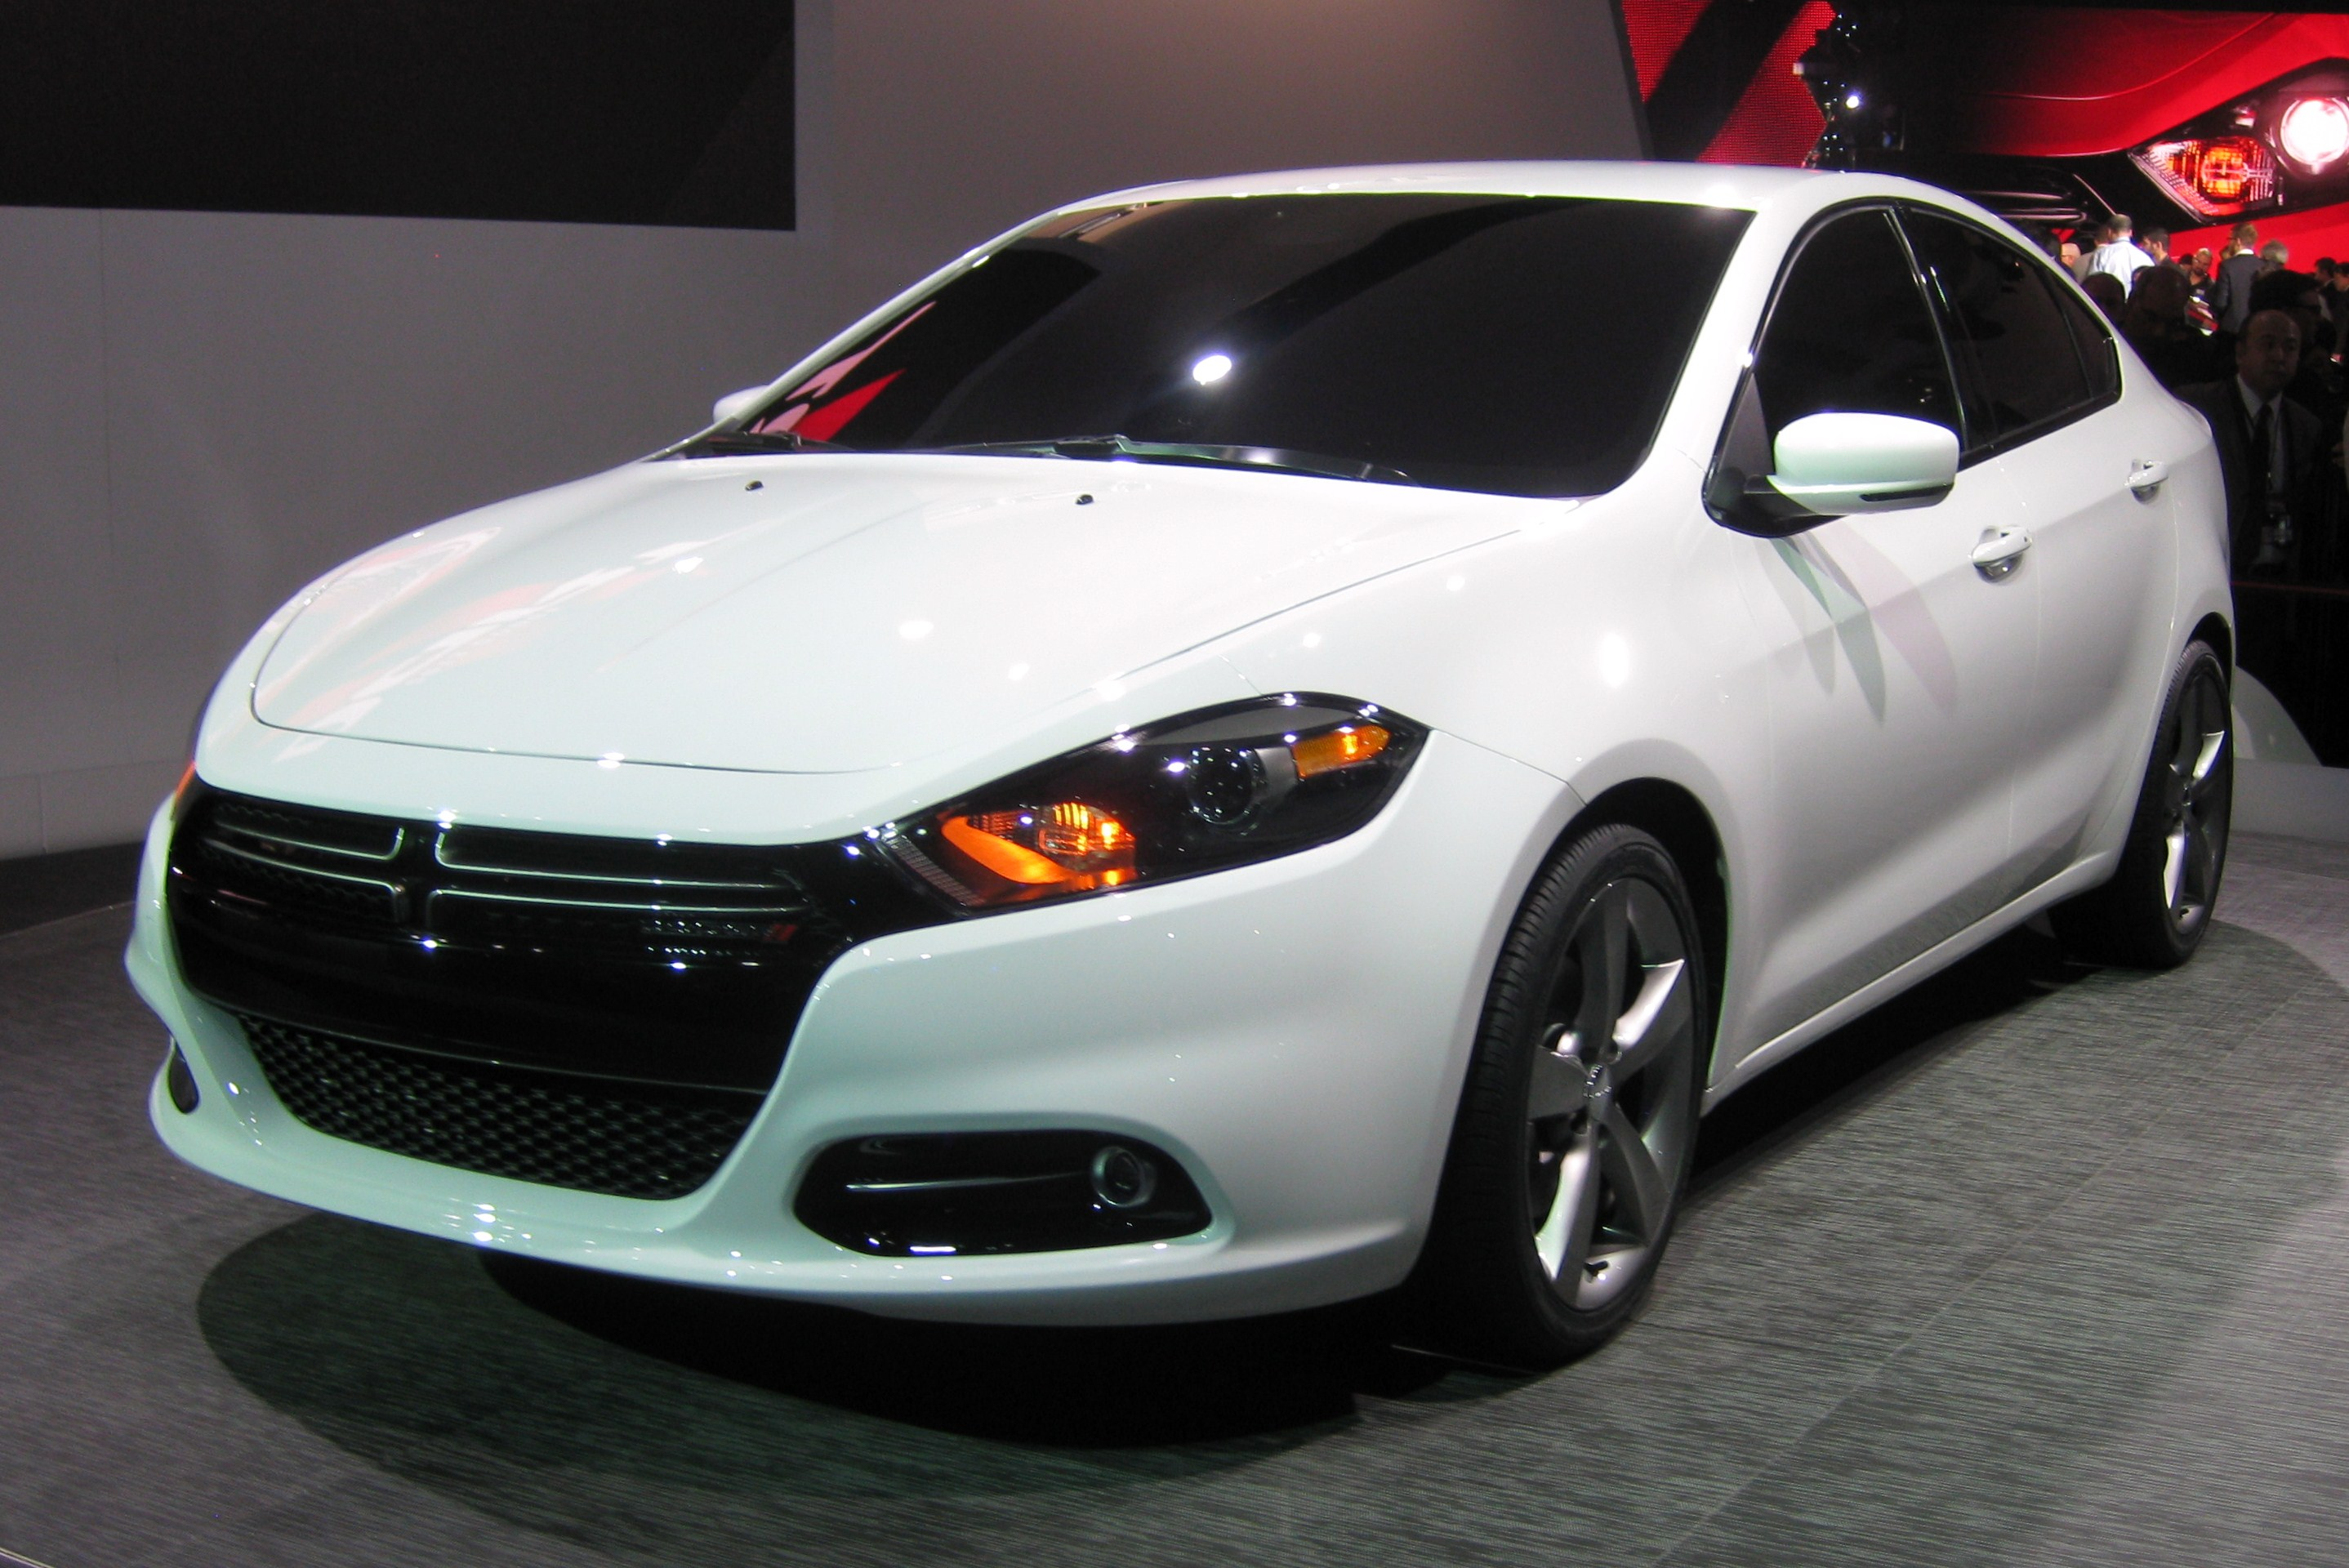 File:Dodge Dart at NAIAS 2012.jpg - Wikimedia Commons